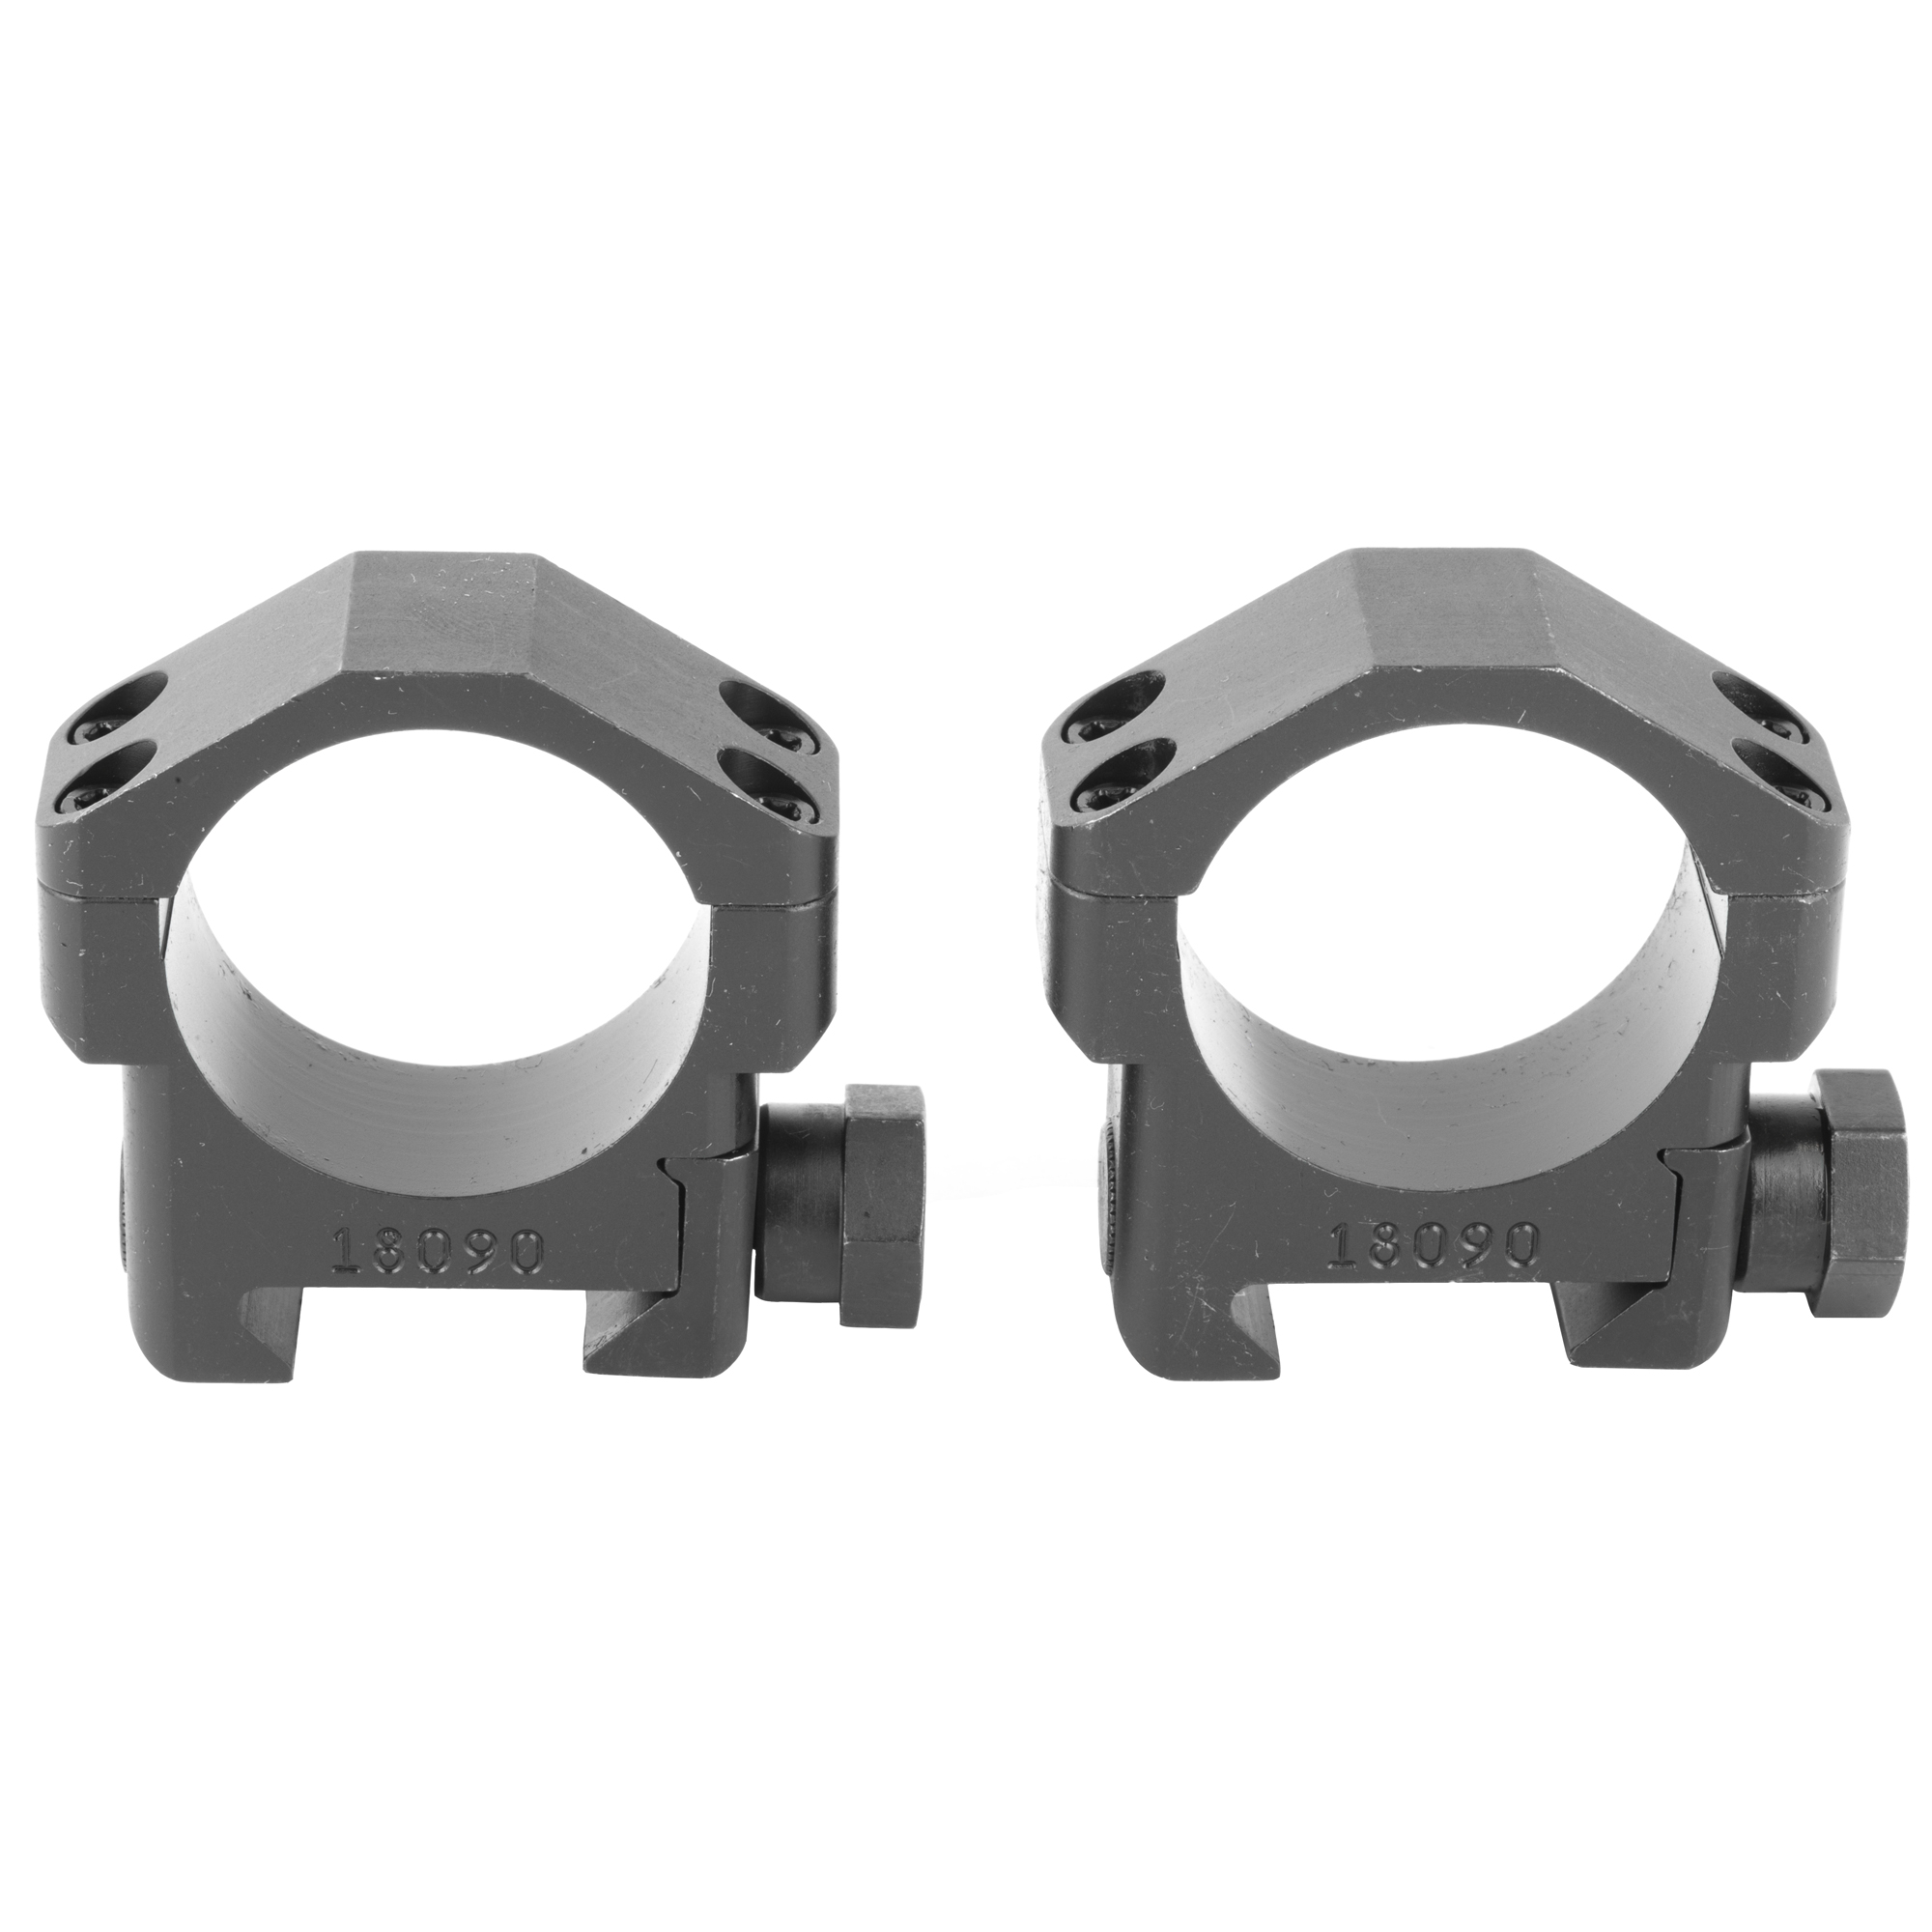 The Badger Ordnance 30mm Standard Scope Rings are optimized for use with current 30mm optics and accommodate precision rifles with mid and heavy barrel profiles. They are machined from Ordnance Grade Steel and Black Oxide finished.